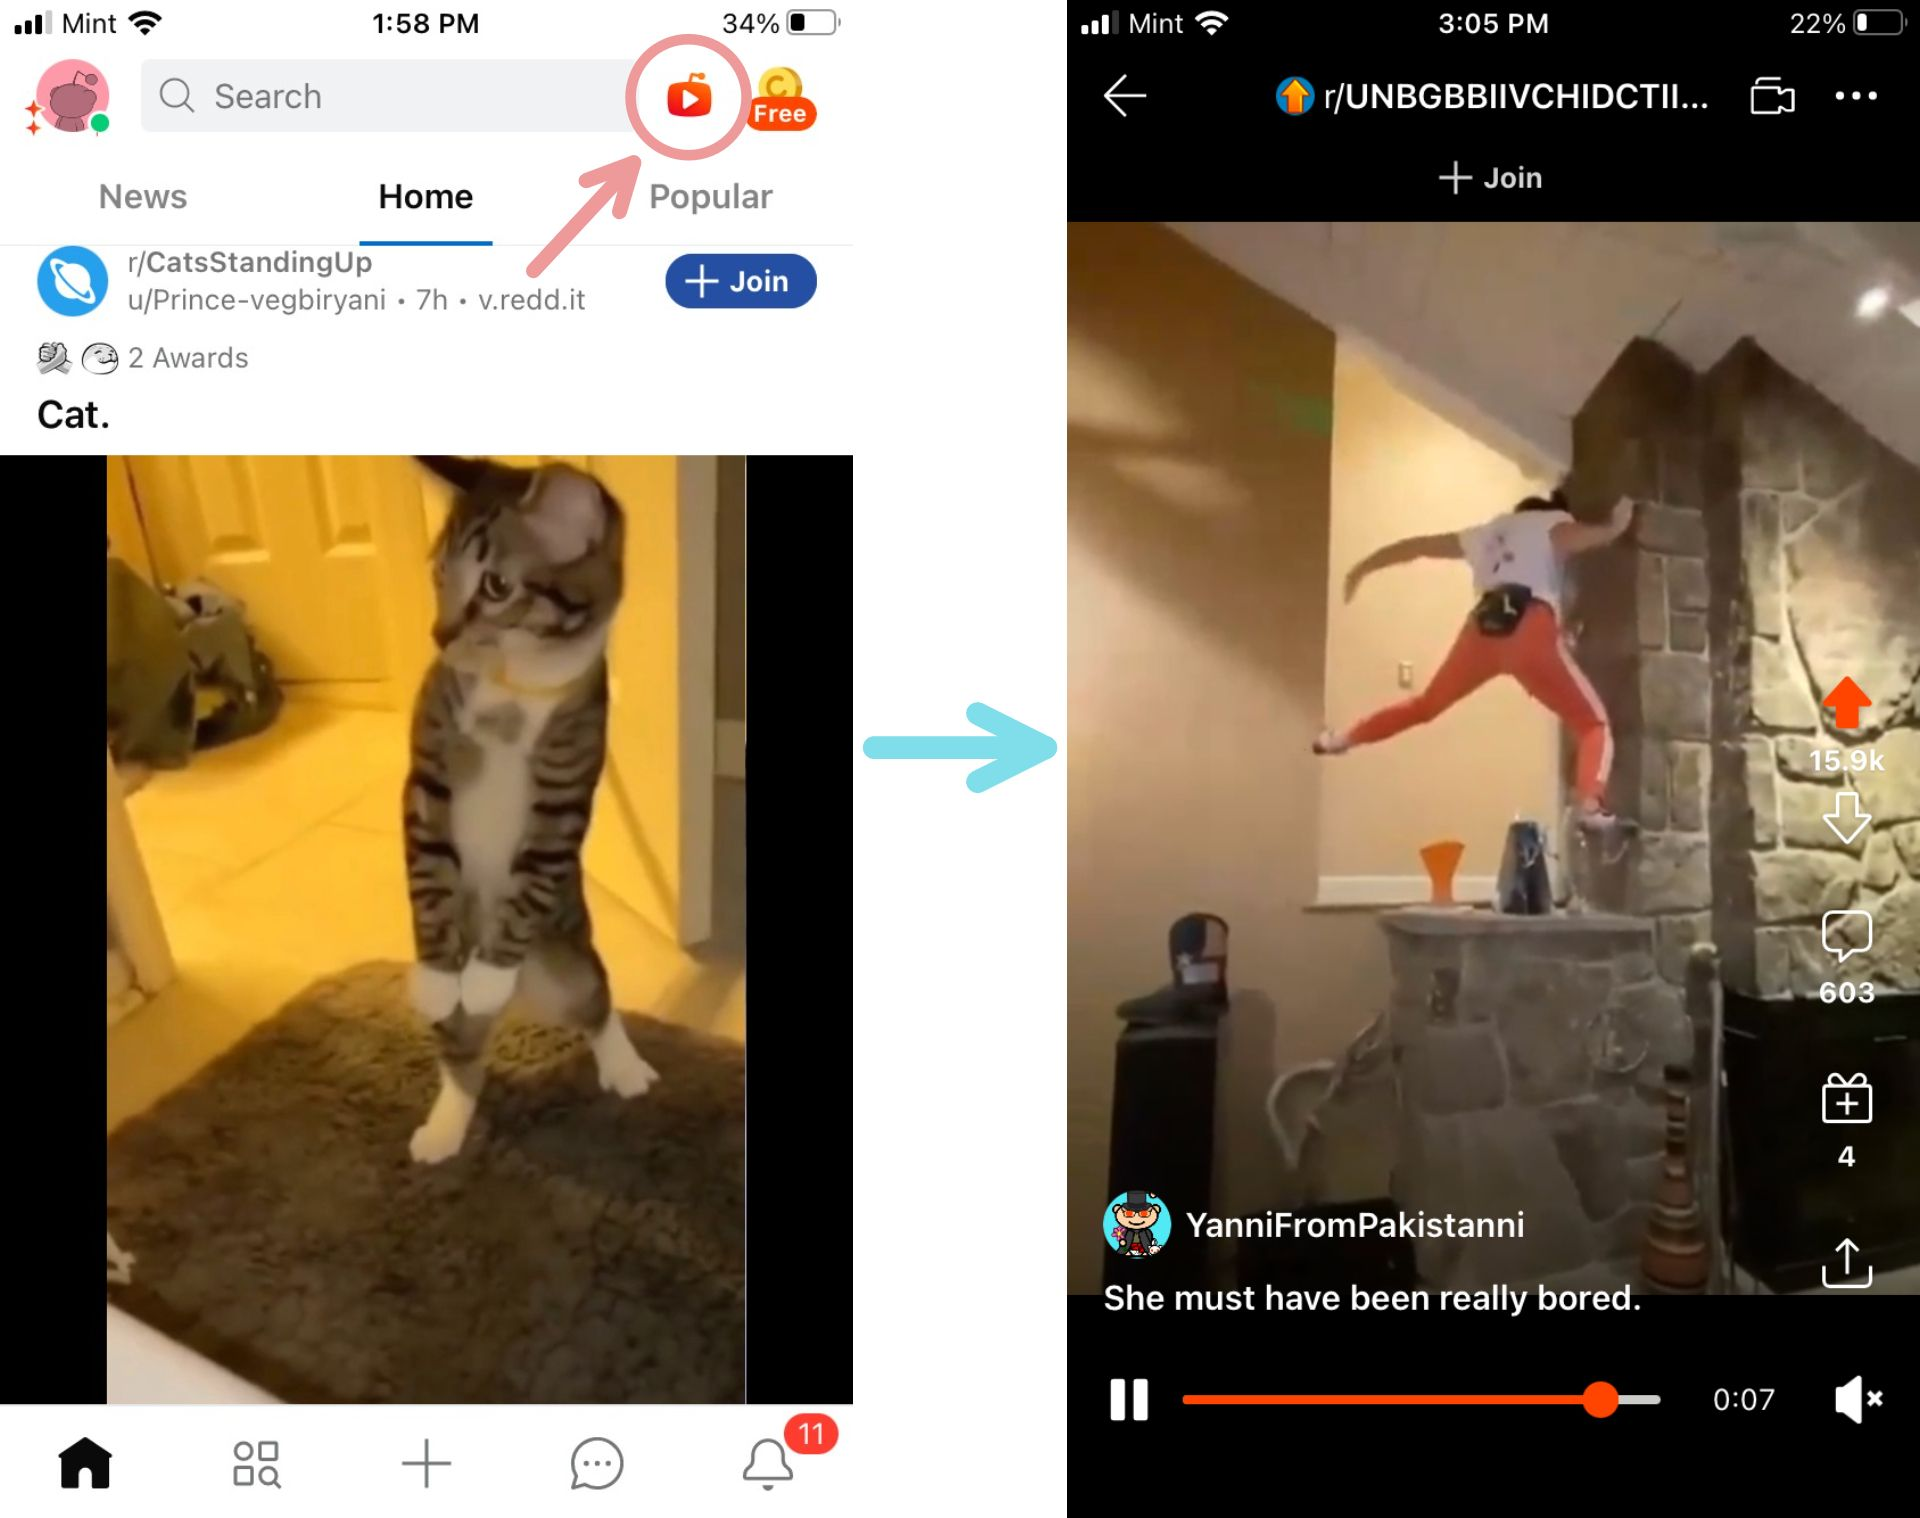 Screenshots showing the location and appearance of the new Reddit video feed.